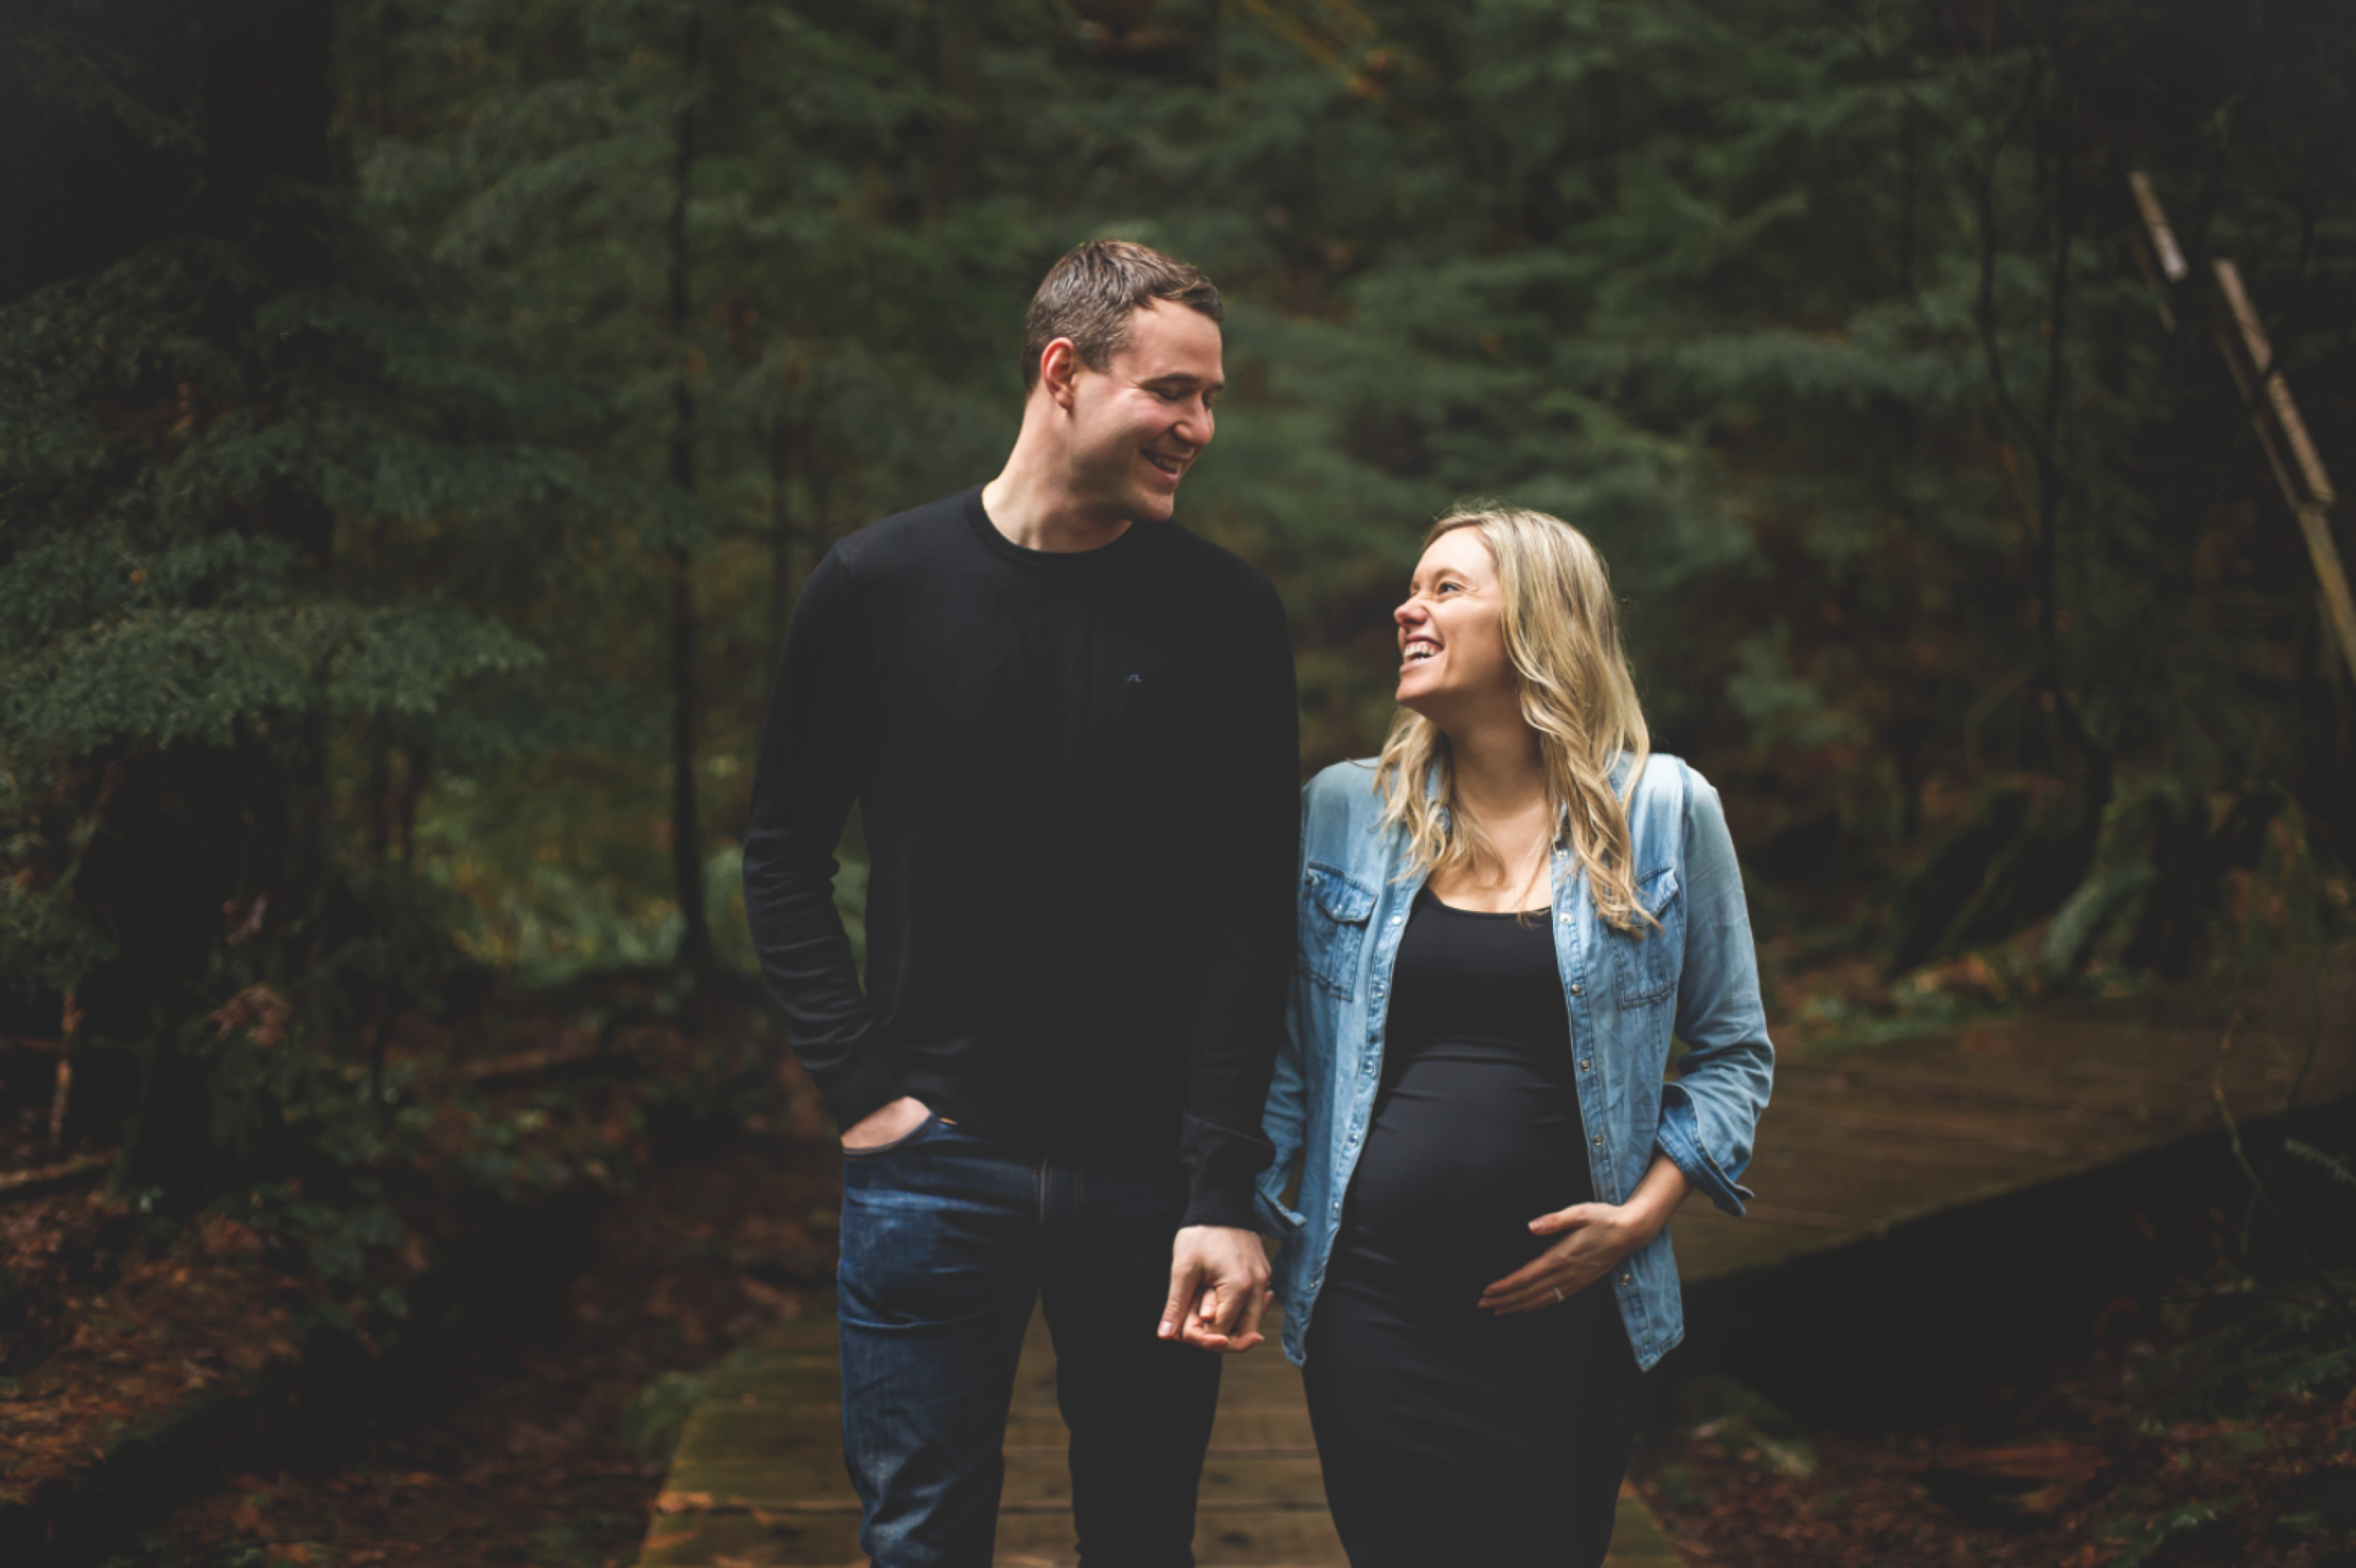 Maternity-Session-North-Vancouver-Lynn-Canyon-BC-Hamilton-Burlington-Oakville-Niagara-Toronto-Wedding-Portrait-Photographer-Expecting-Photography-Waterfront-HamOnt-Golden-Hour-Moments-by-Lauren-Photo-Image-7.png